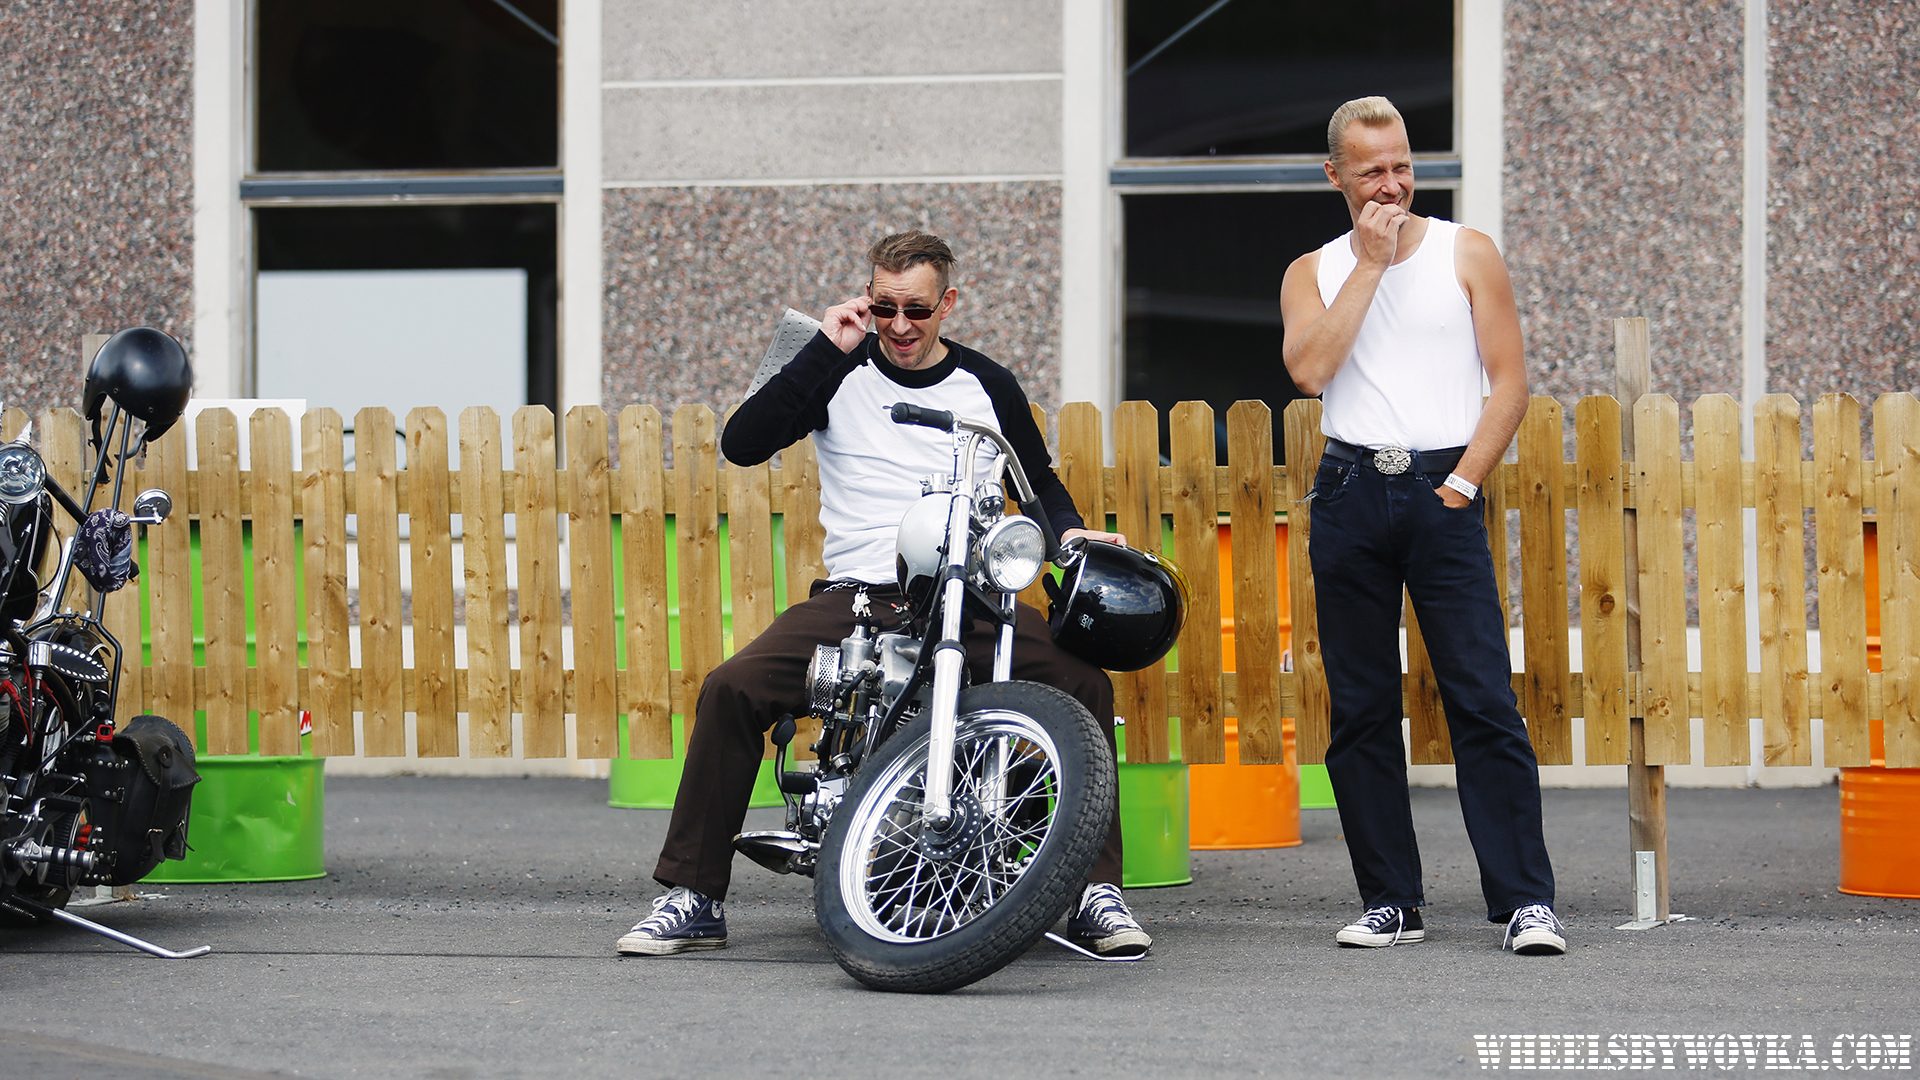 do-dads-vintage-drag-show-finland-by-wheelsbywovka-1